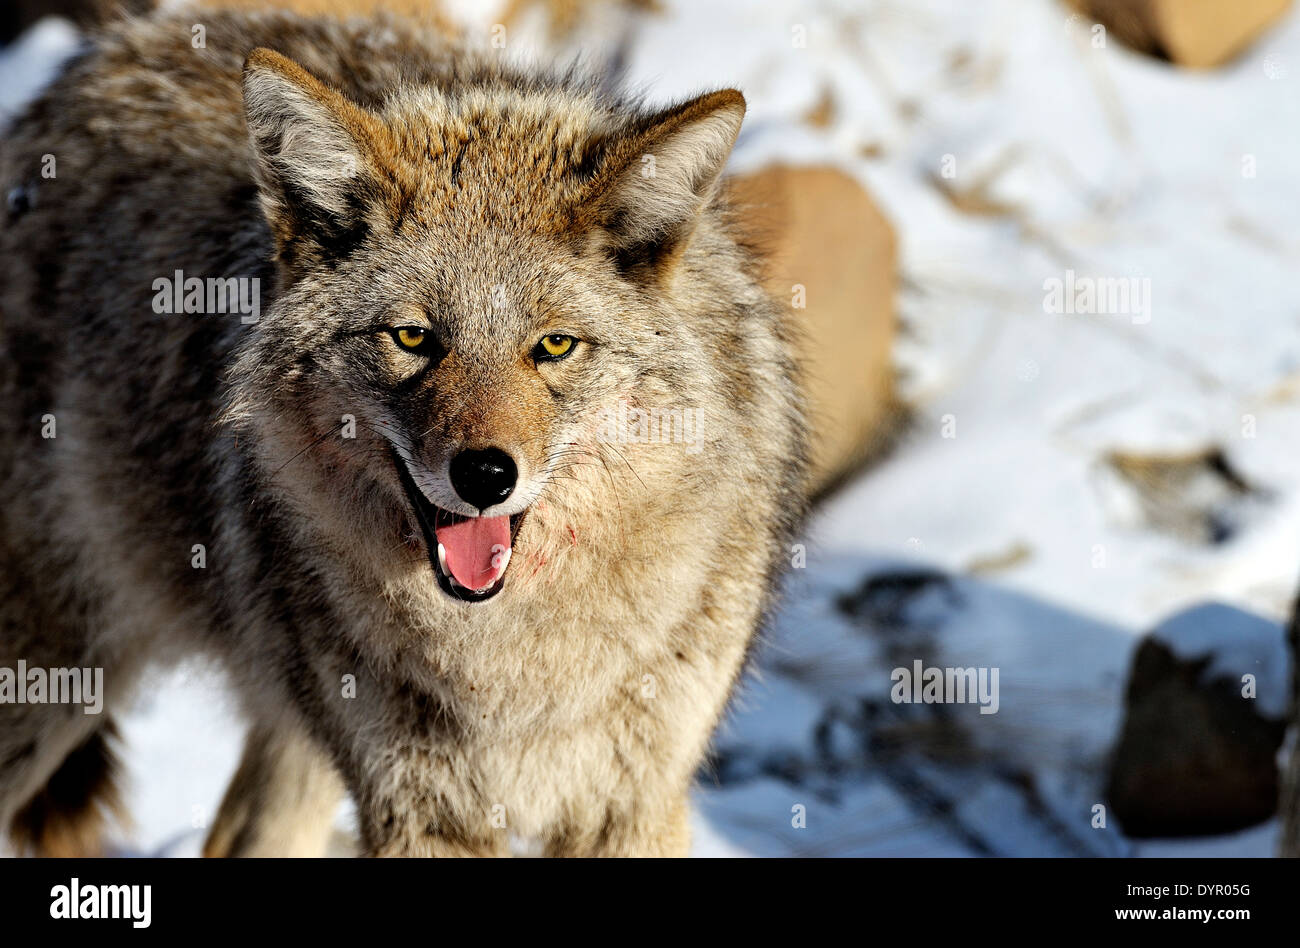 A wild coyote standing looking forward showing his mouth and teeth Stock Photo